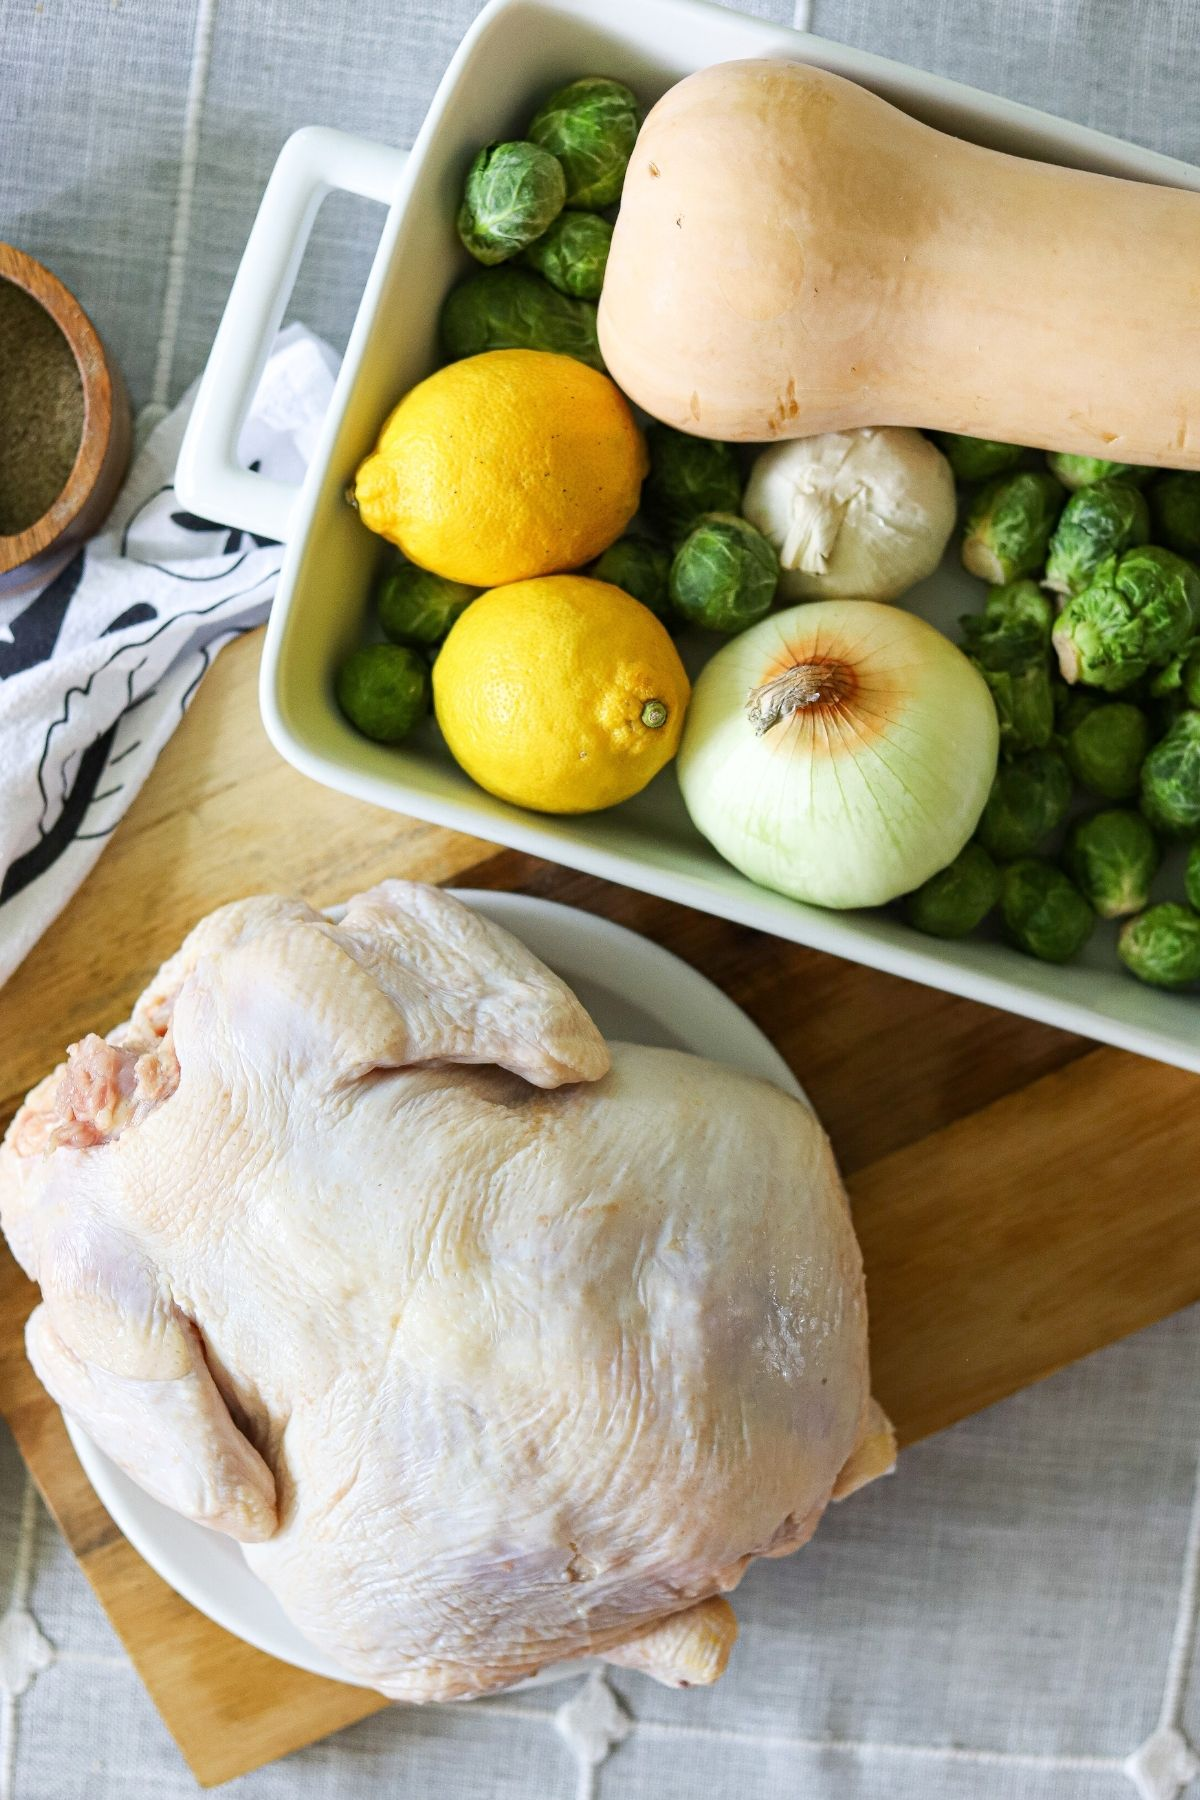 A whole chicken, raw, fresh brussels sprouts, a butternut squash, lemons, garlic, and onions on a wooden cutting board